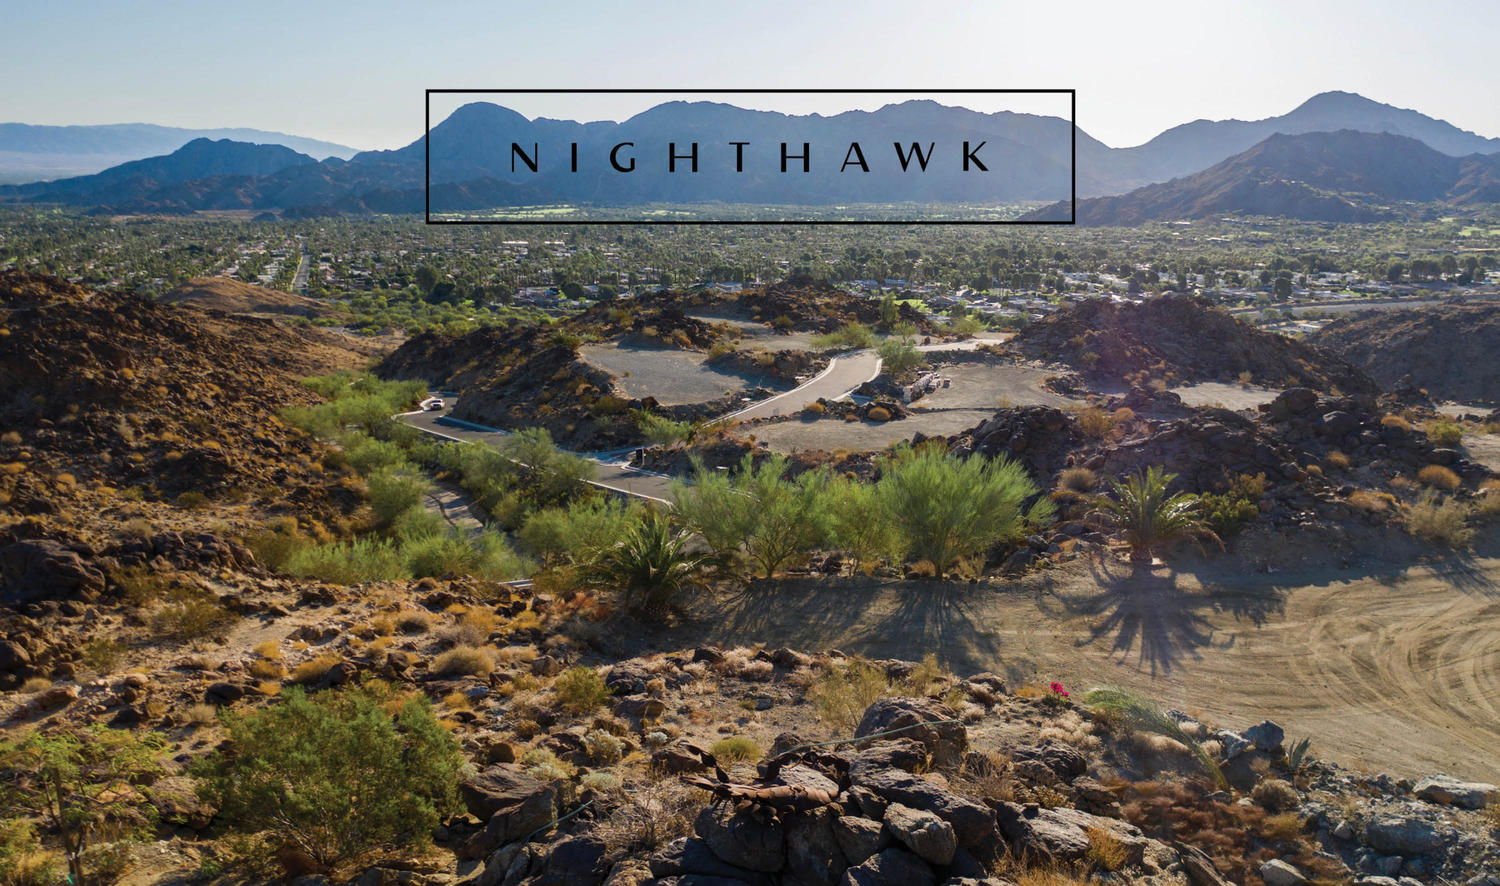 Lot 5 Nighthawk Estates, Lot 5 Estates Palm Desert, CA 92260